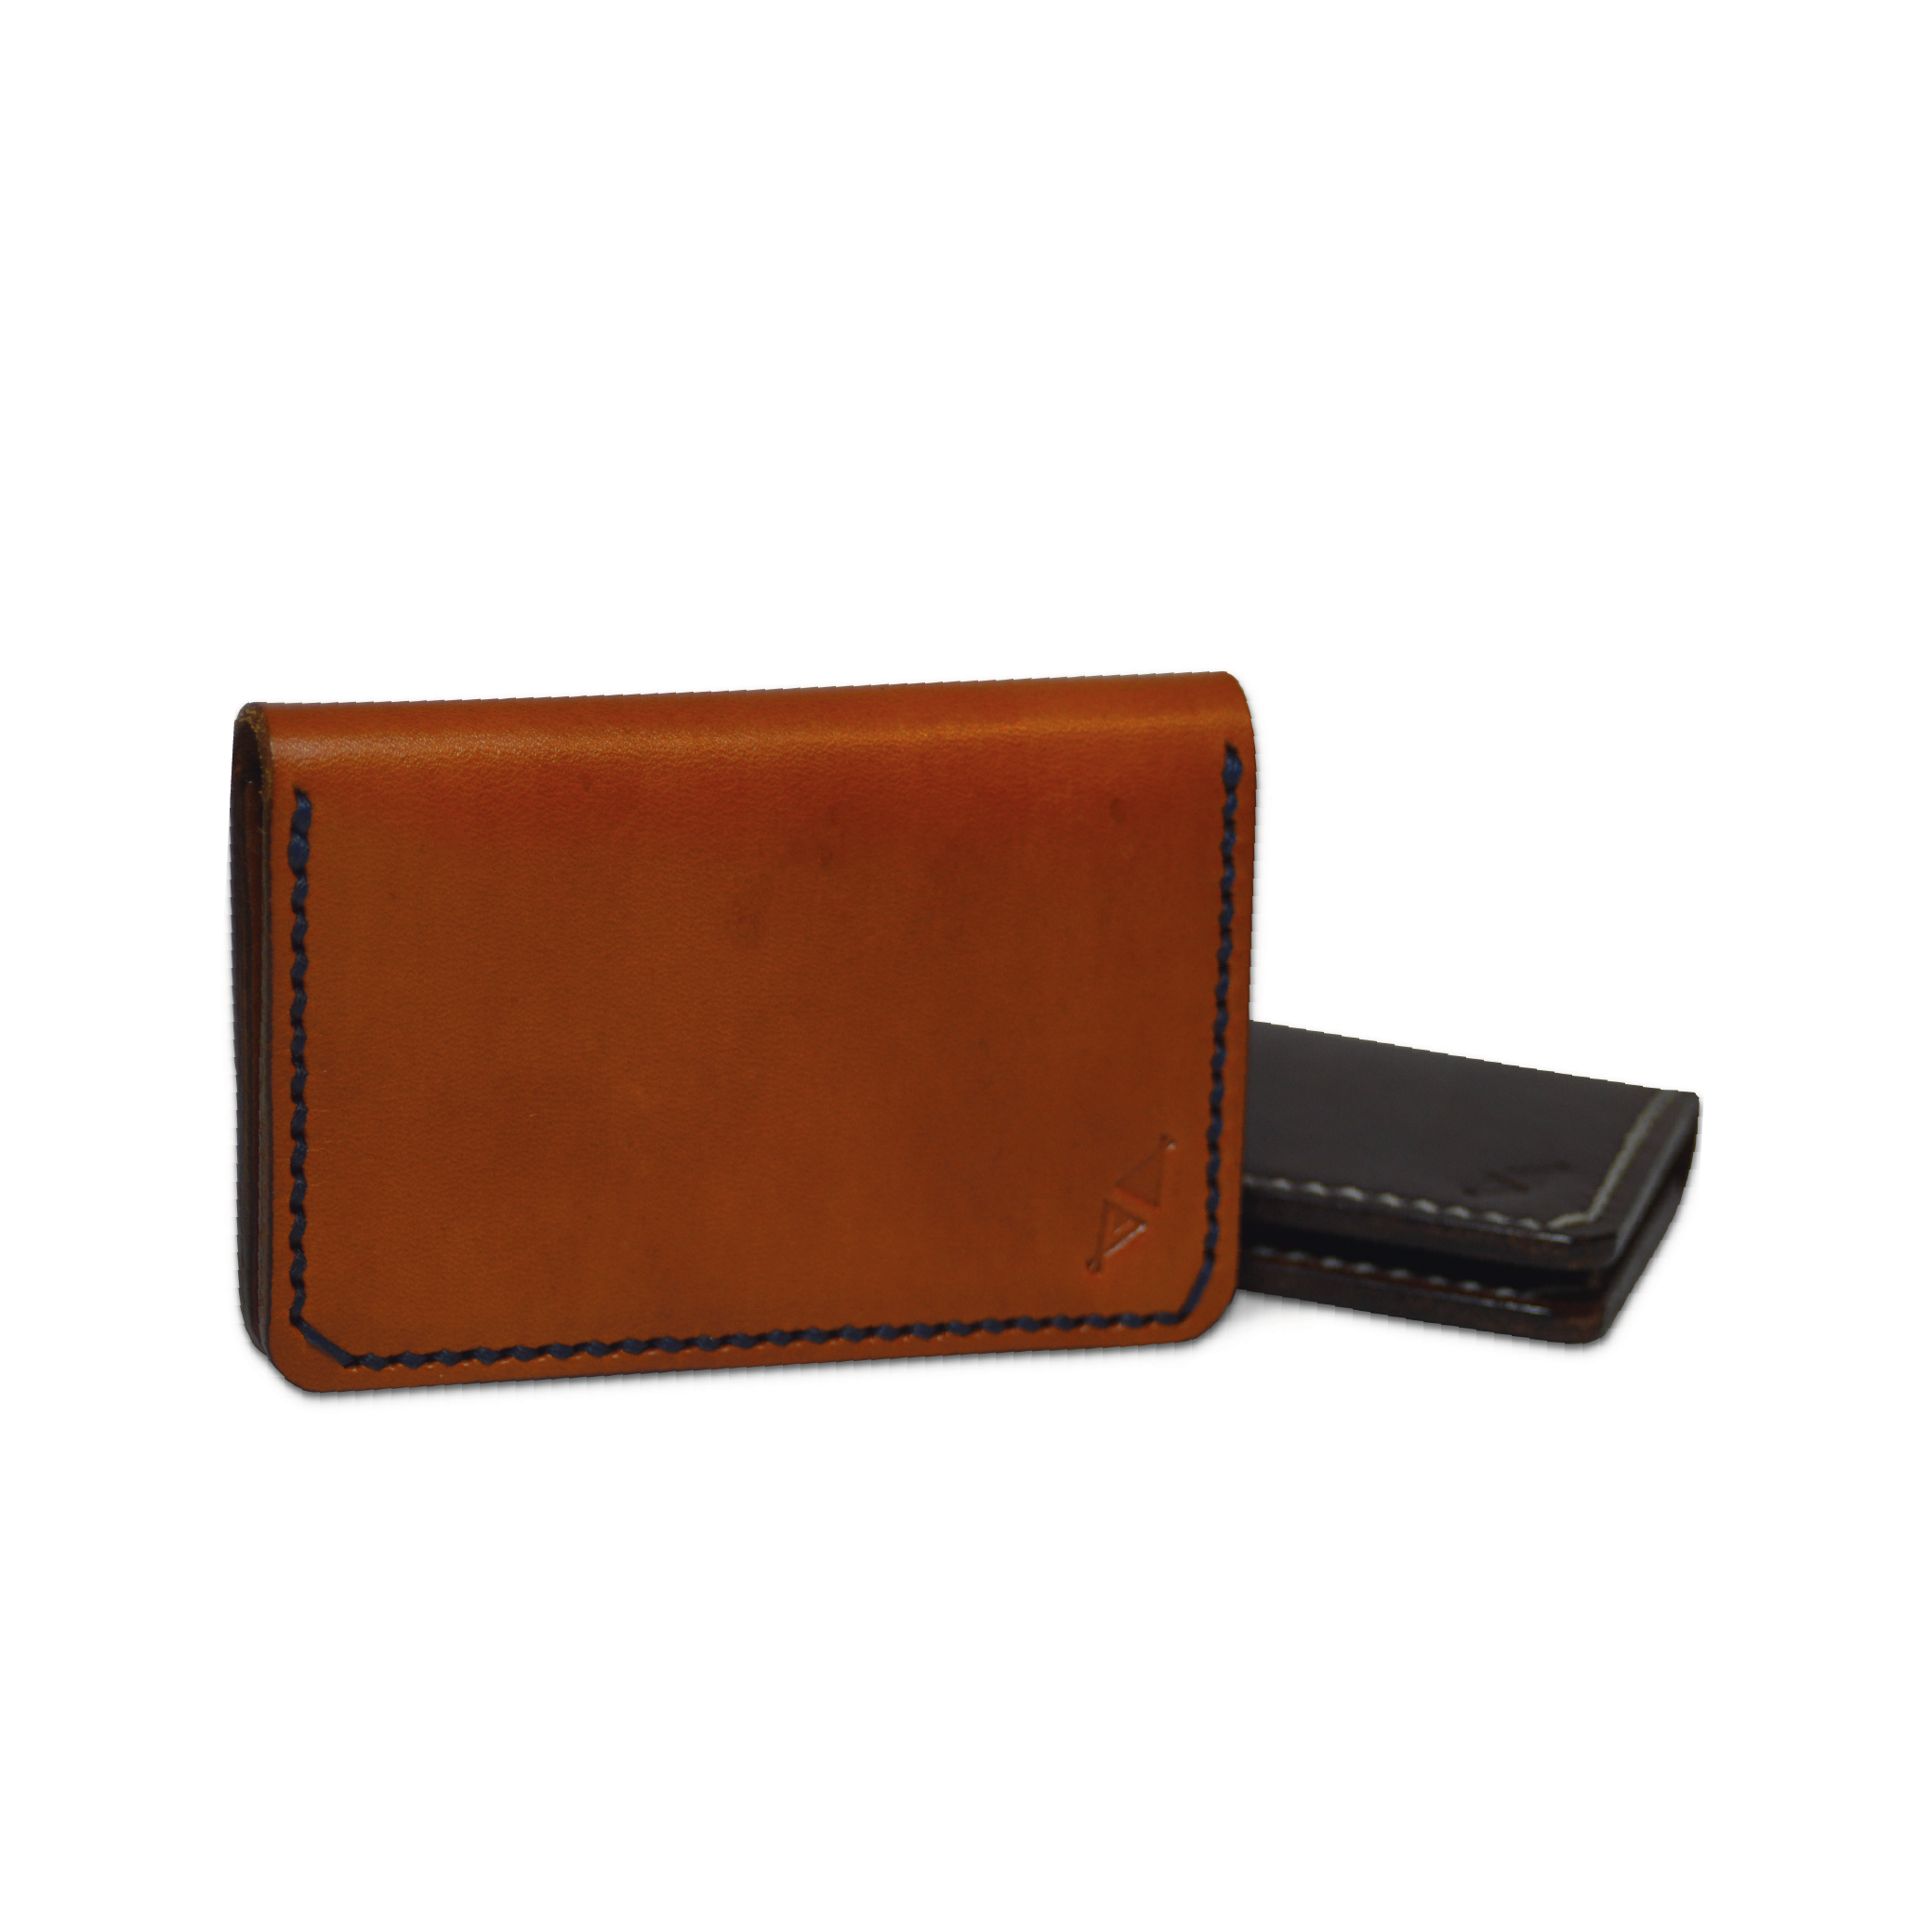 MAWGAN WALLET    By  Newland Supply Co.     Handmade in the UK, the Mawgan Wallet is a styish folding card holder that will only get better with age.    SHOP NOW        £30